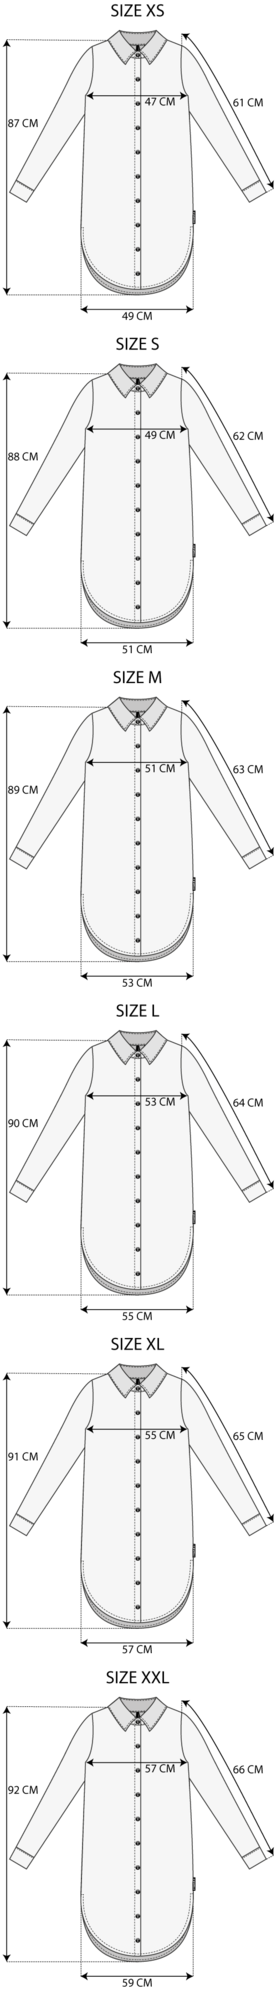 Maattabel Tunic